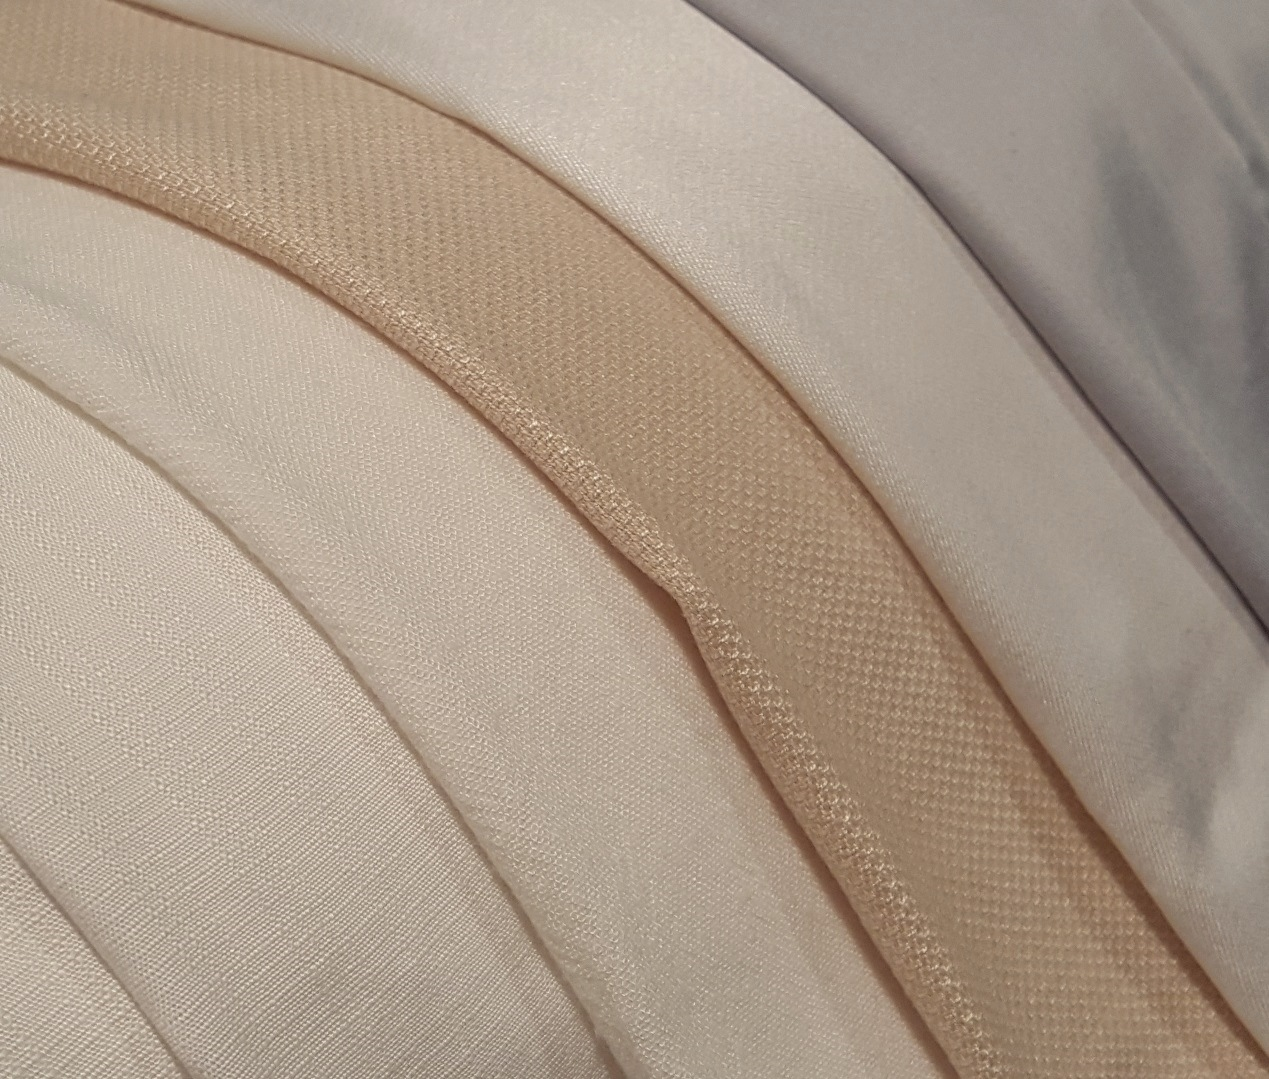 Natural Upholstery Fabric San Diego Upholstery Restoration